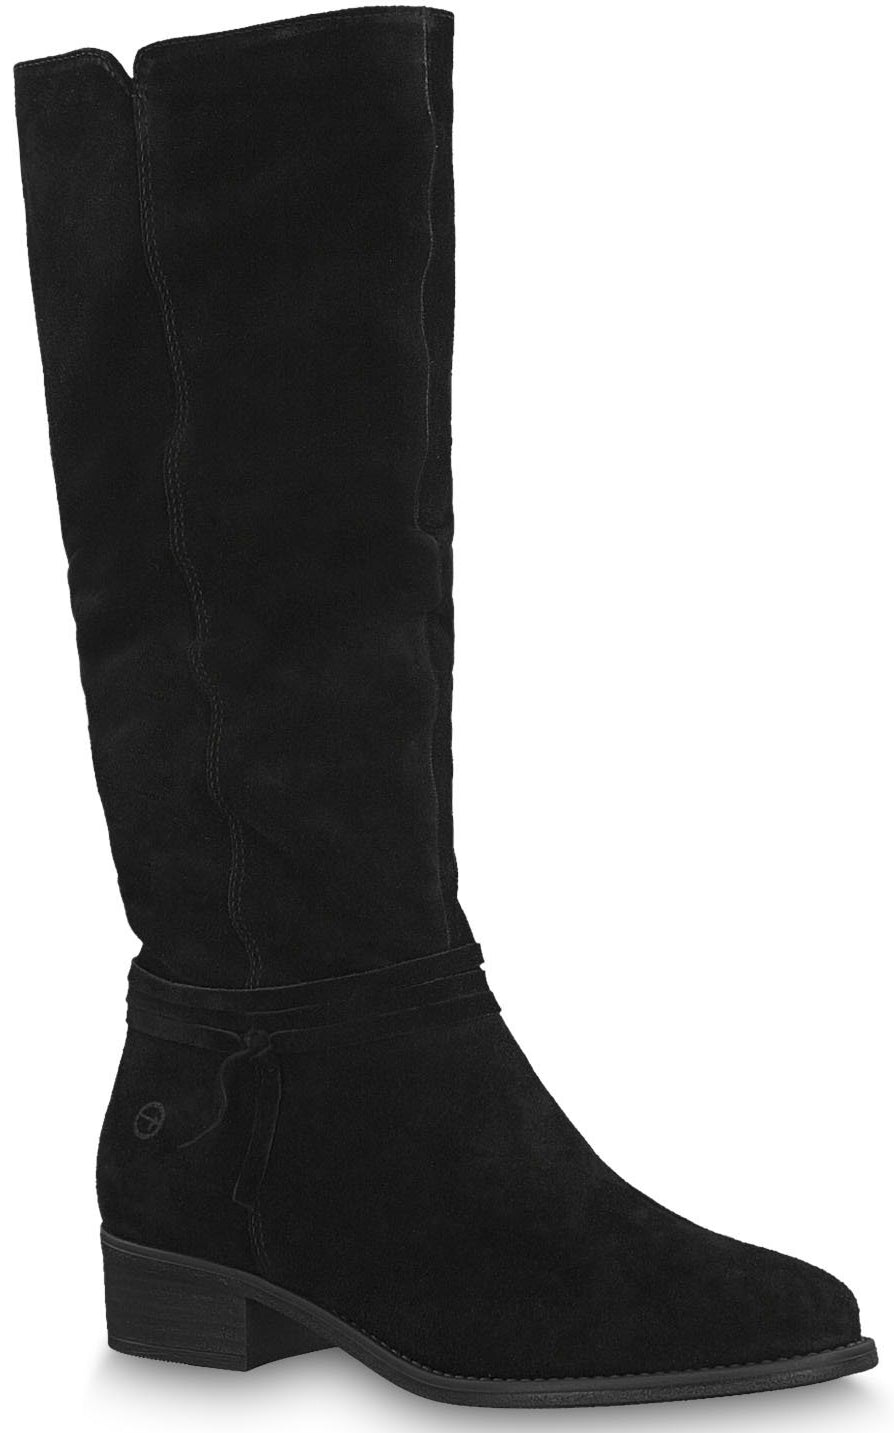 Tamaris - 25561 Black Boots